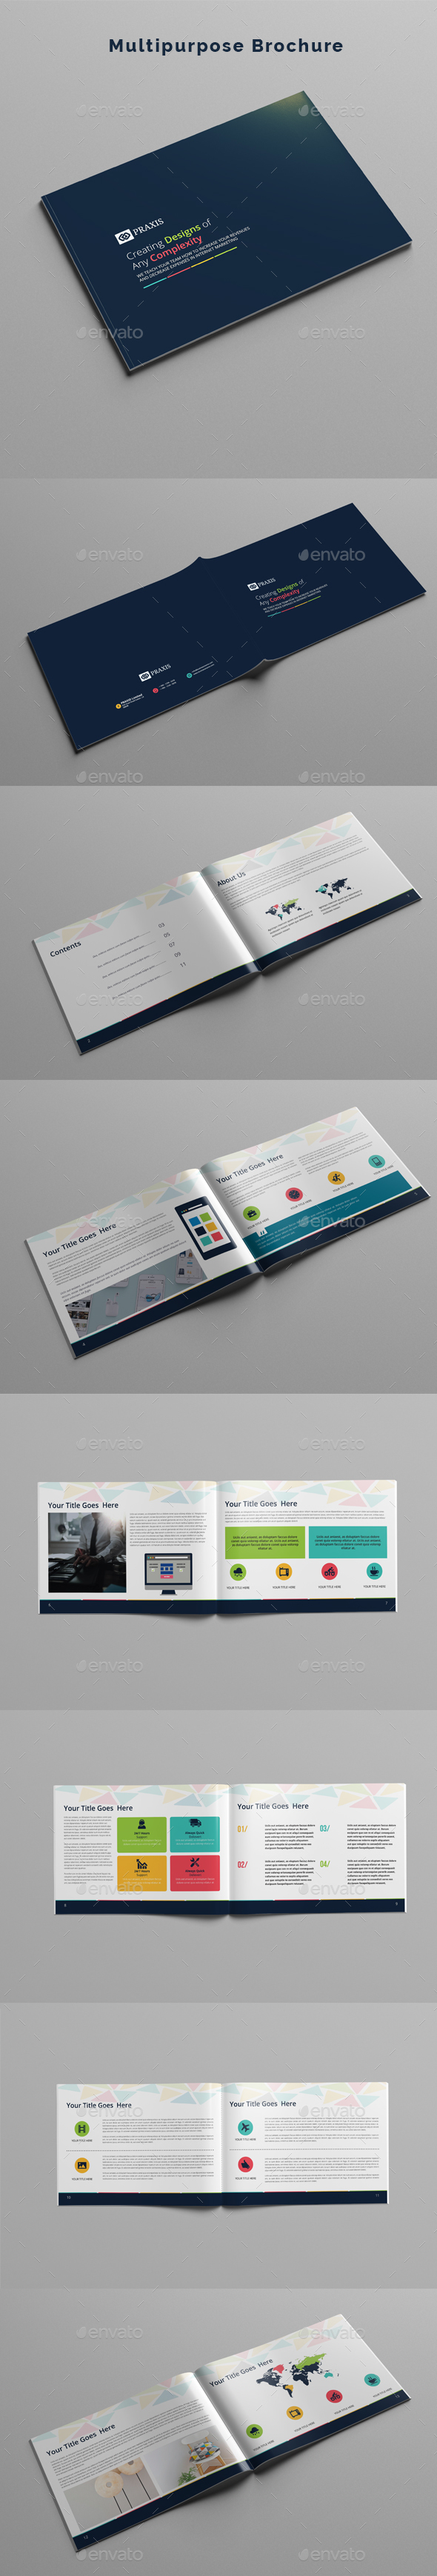 Multipurpose Brochure - Corporate Brochures